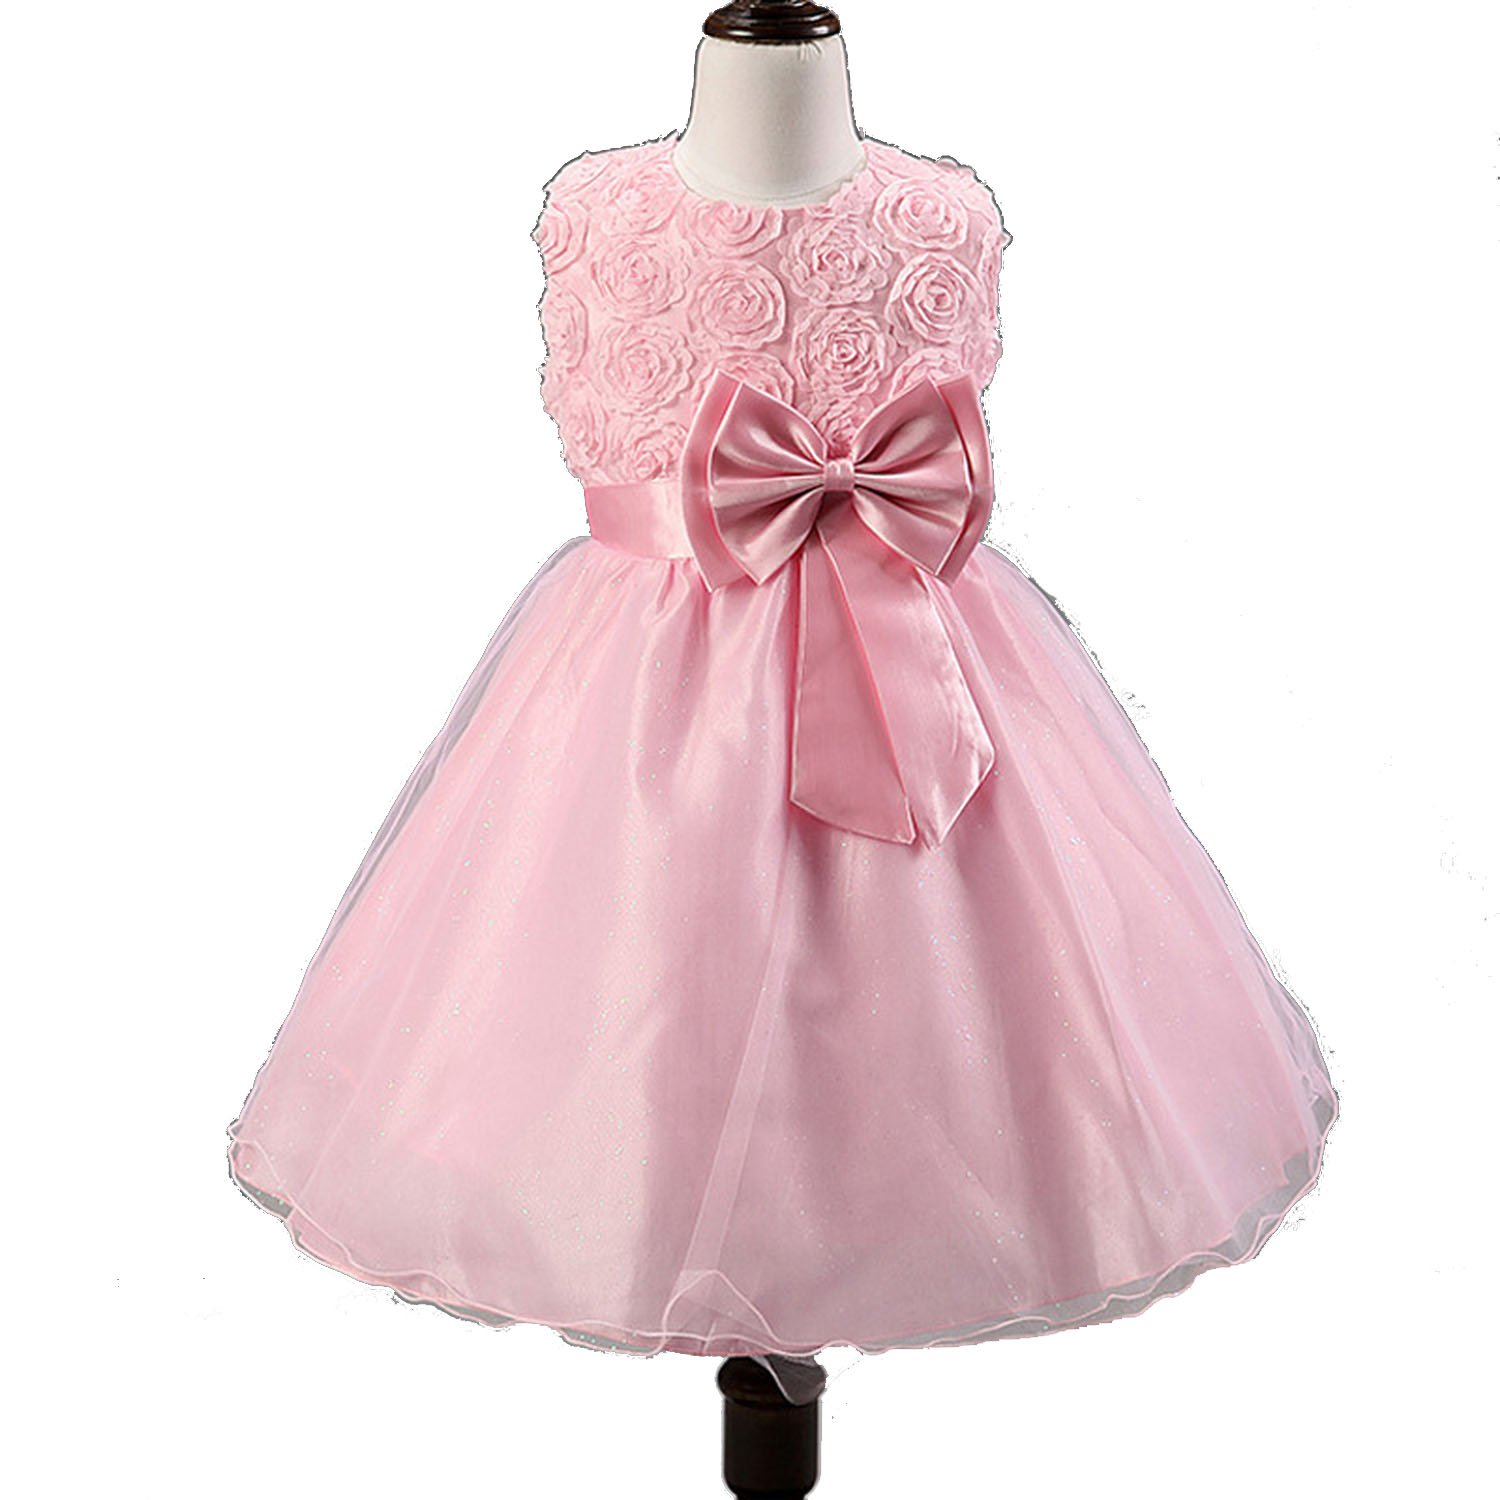 Summer Flower Girl Dresses for Wedding Party Formal Gown for Little Girl First Communion Dress,Pink,Child-11